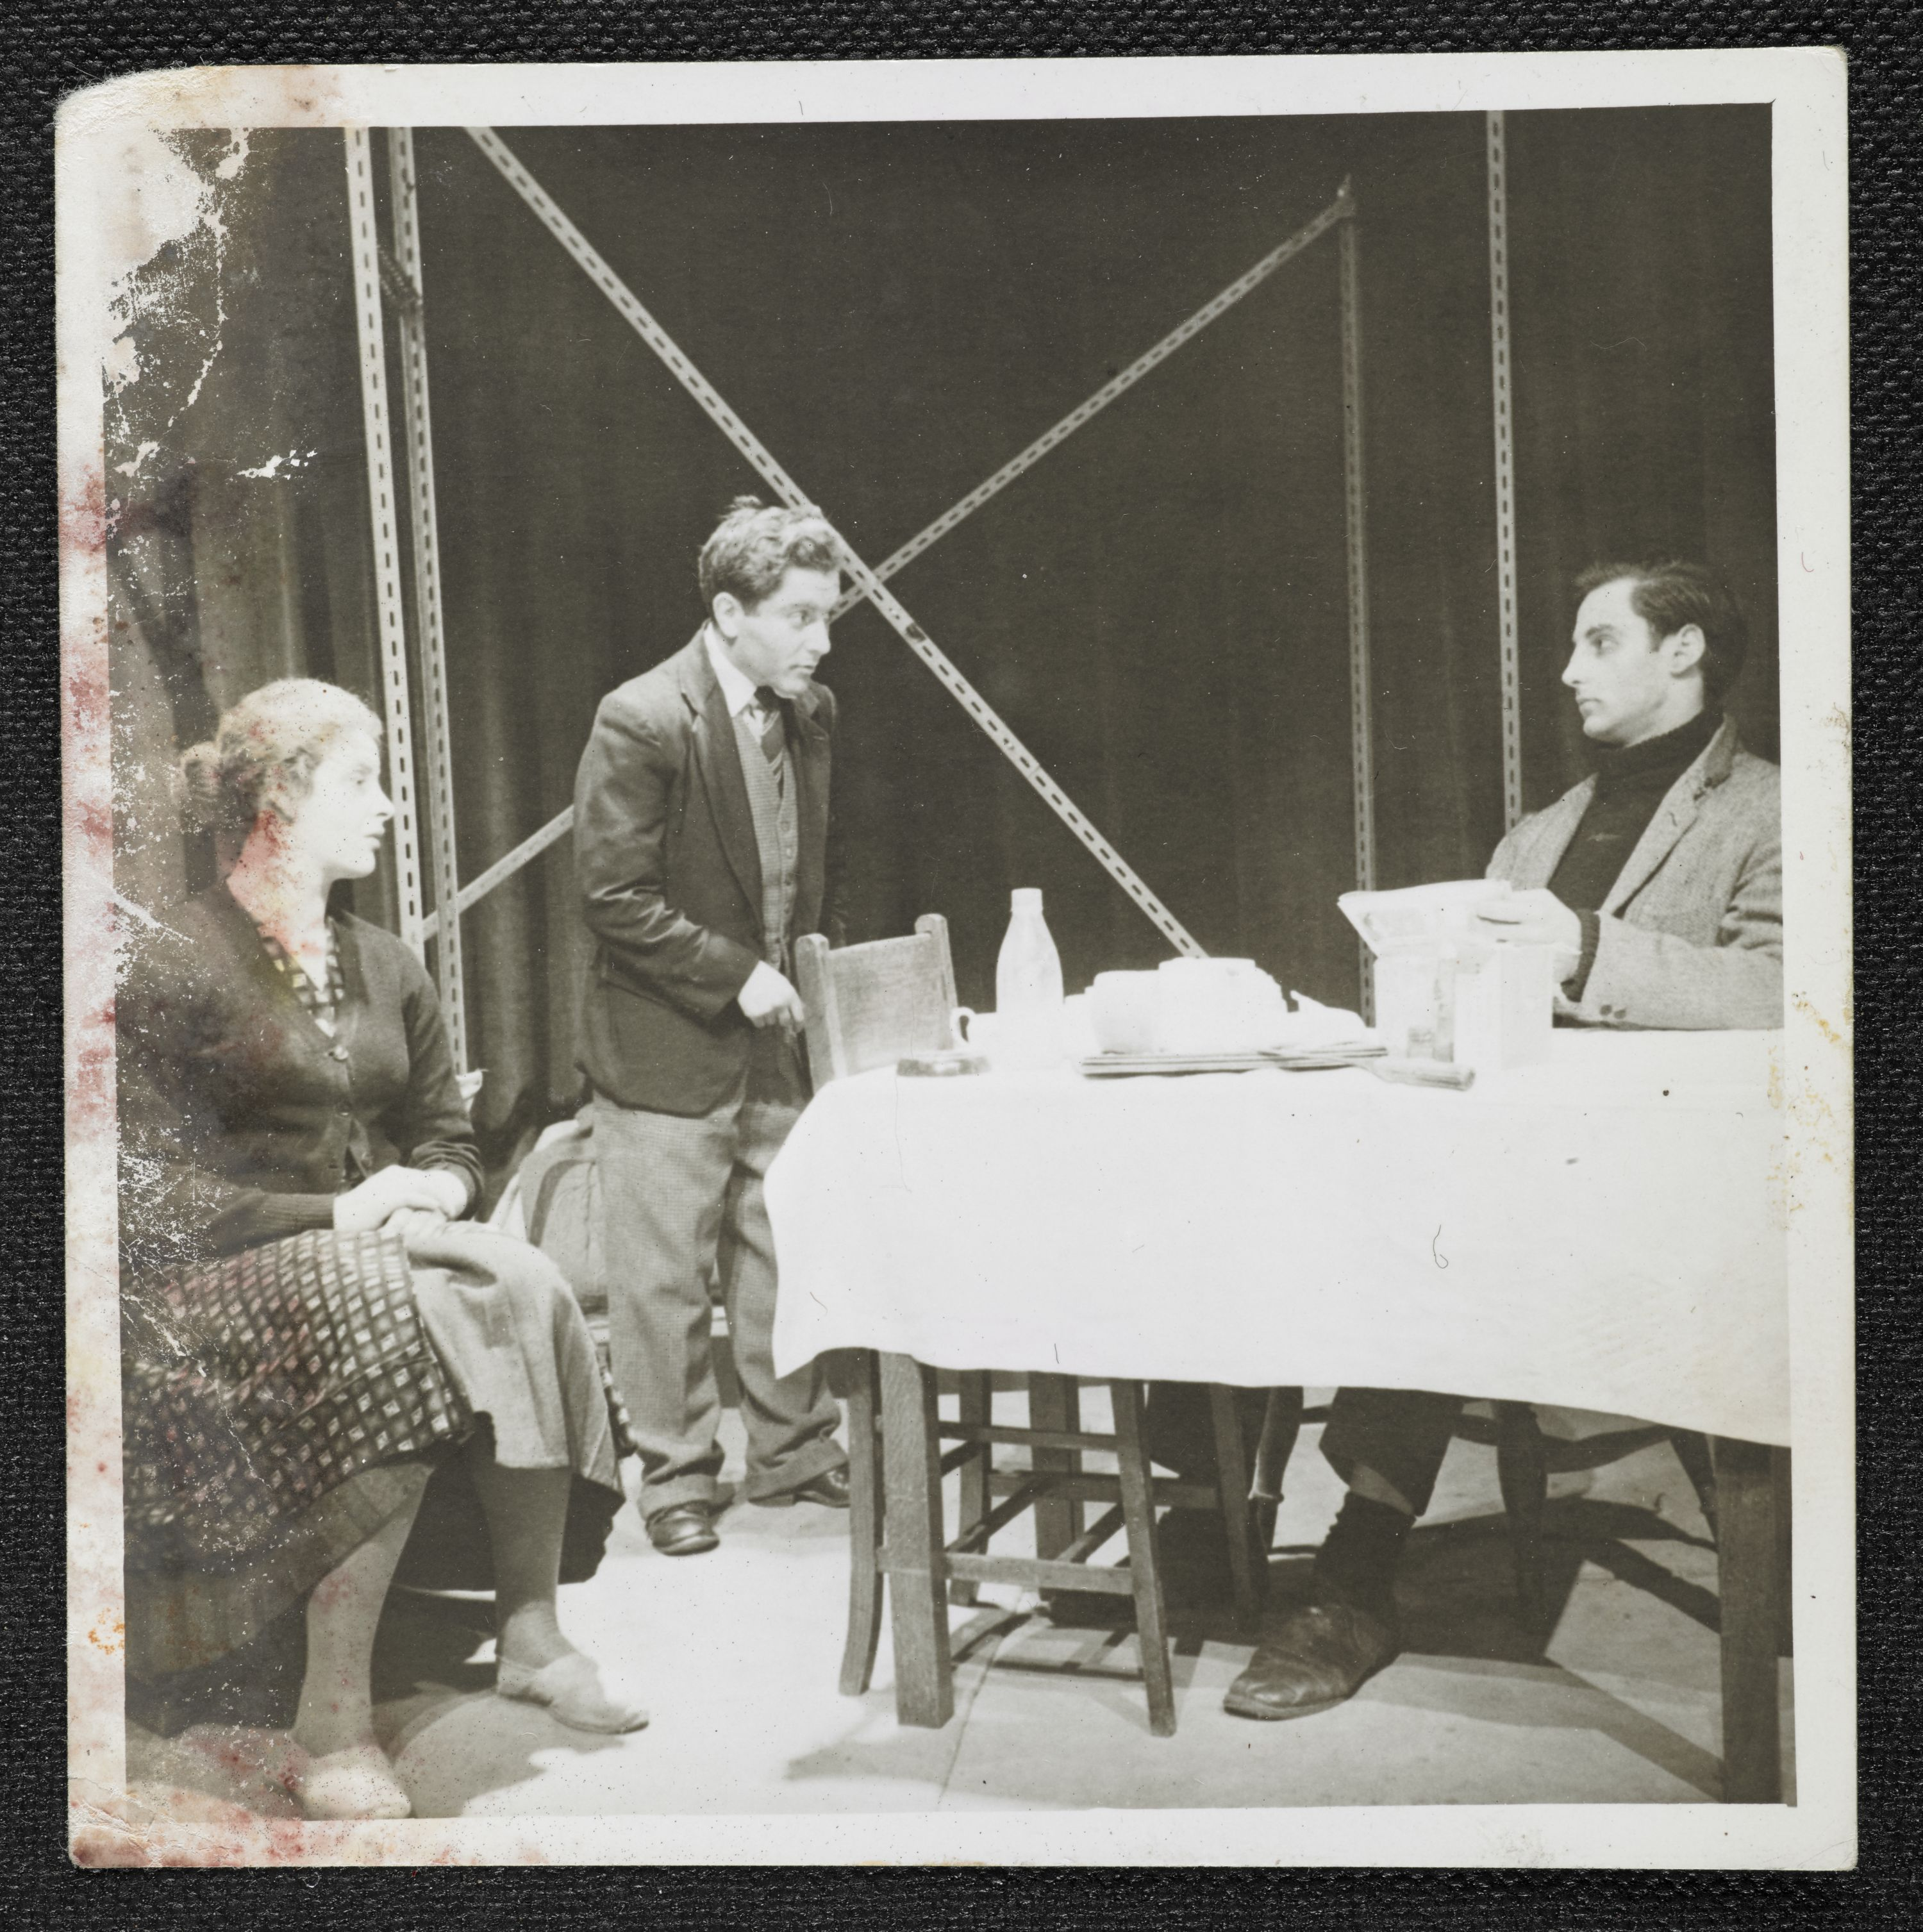 A rehearsal of 'The Room', Pinter's first play, at Bristol University in 1957. Courtesy of the Estate of Harold Pinter